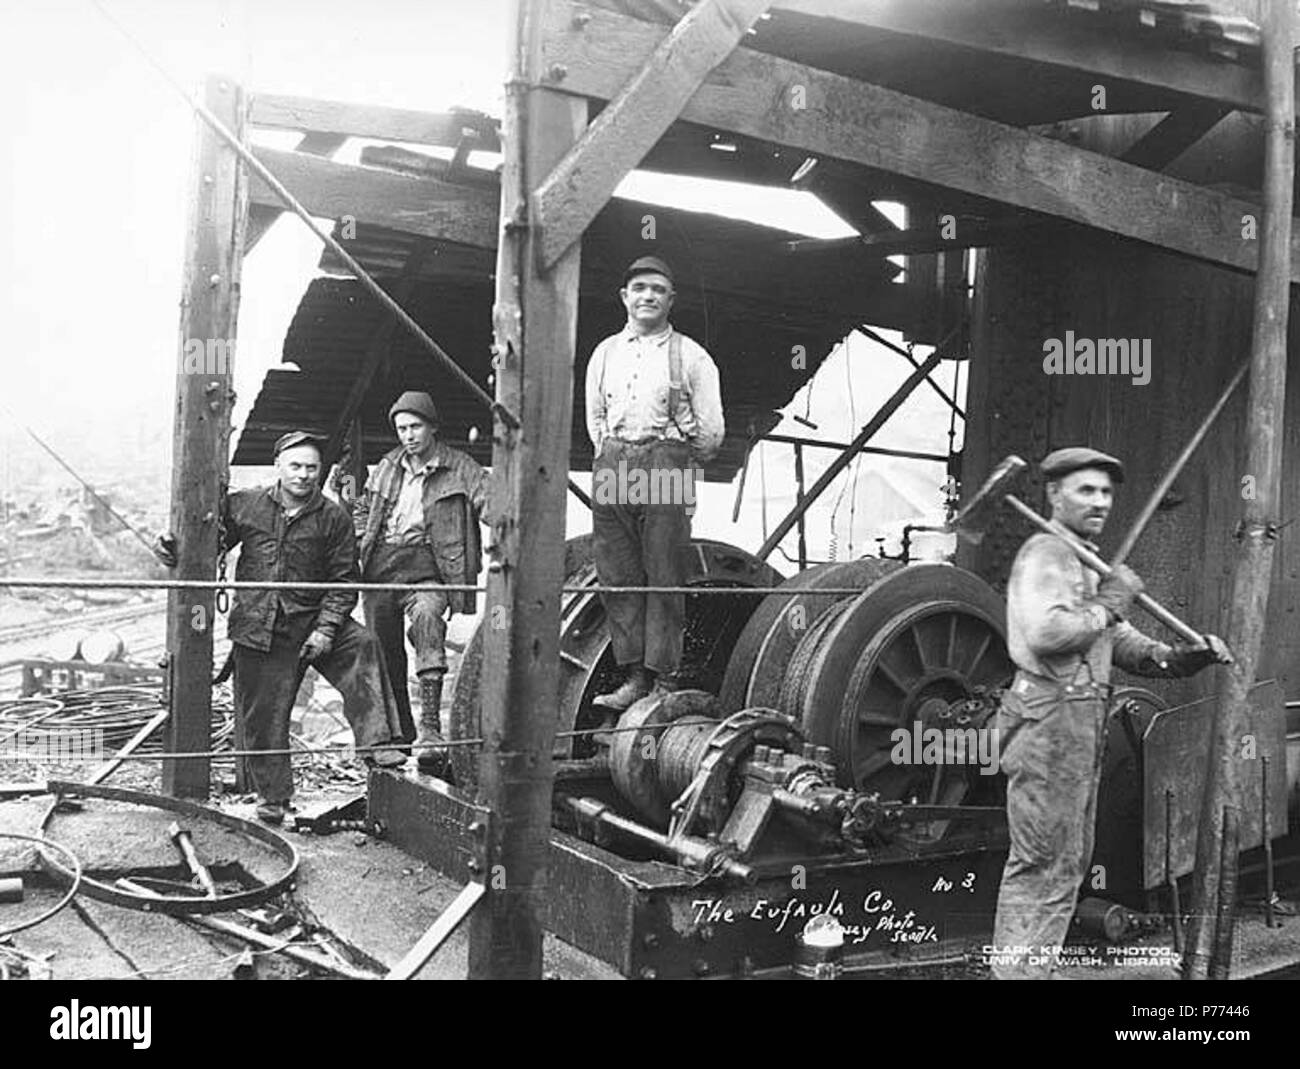 english logging crew and donkey engine the eufaula company ca